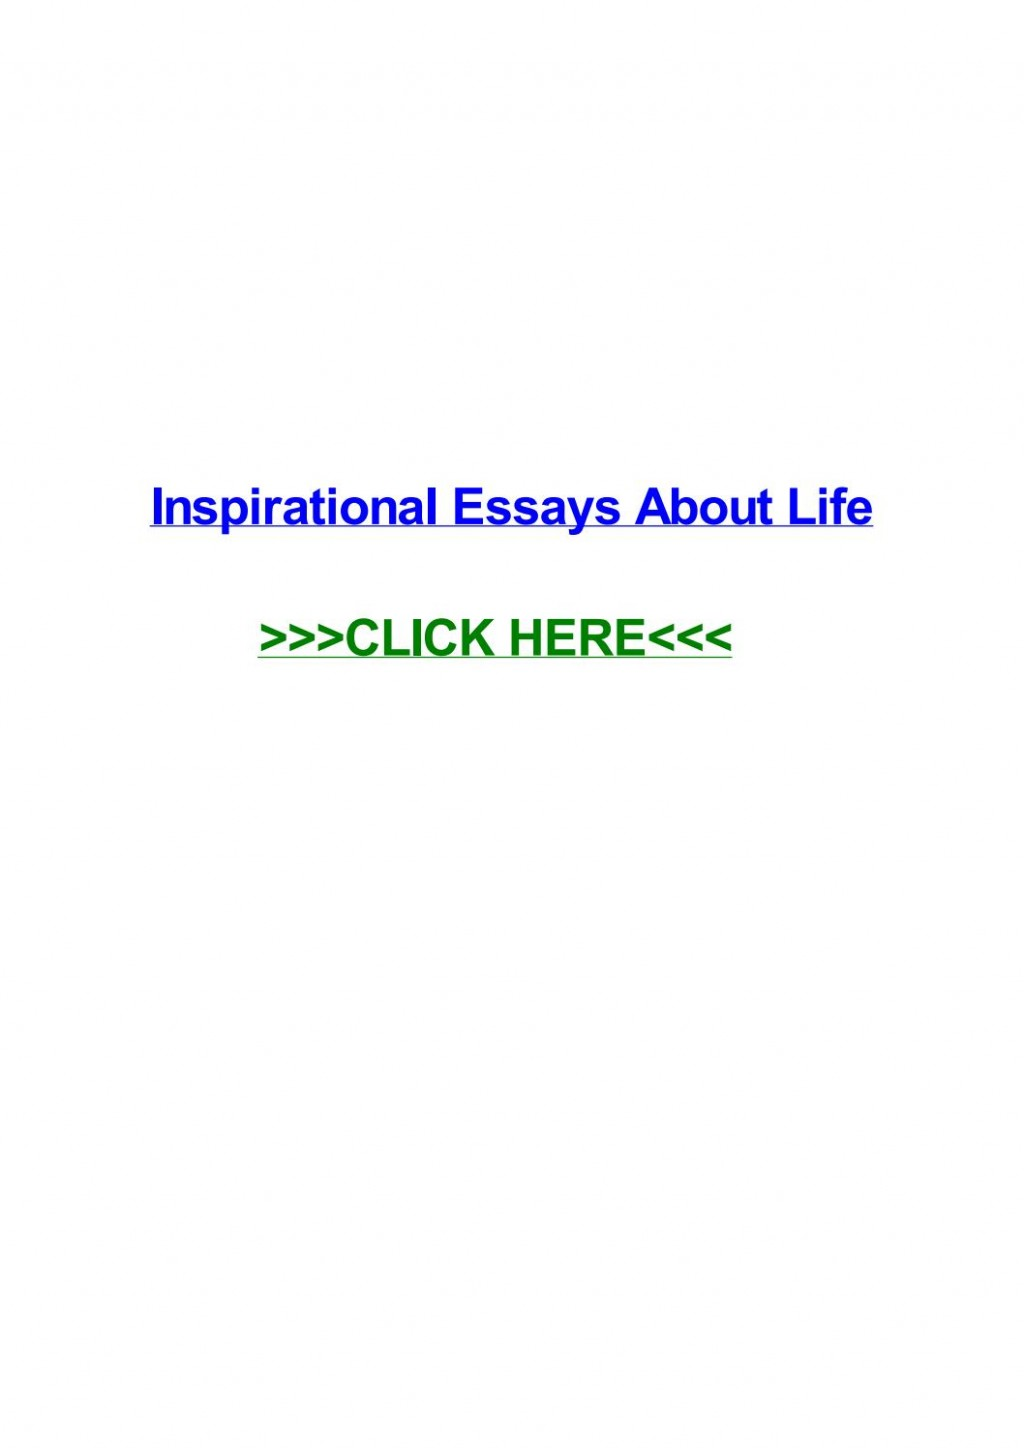 007 Essay Example Page 1 Inspirational Breathtaking Essays In Hindi About Life And Struggles Fathers Large